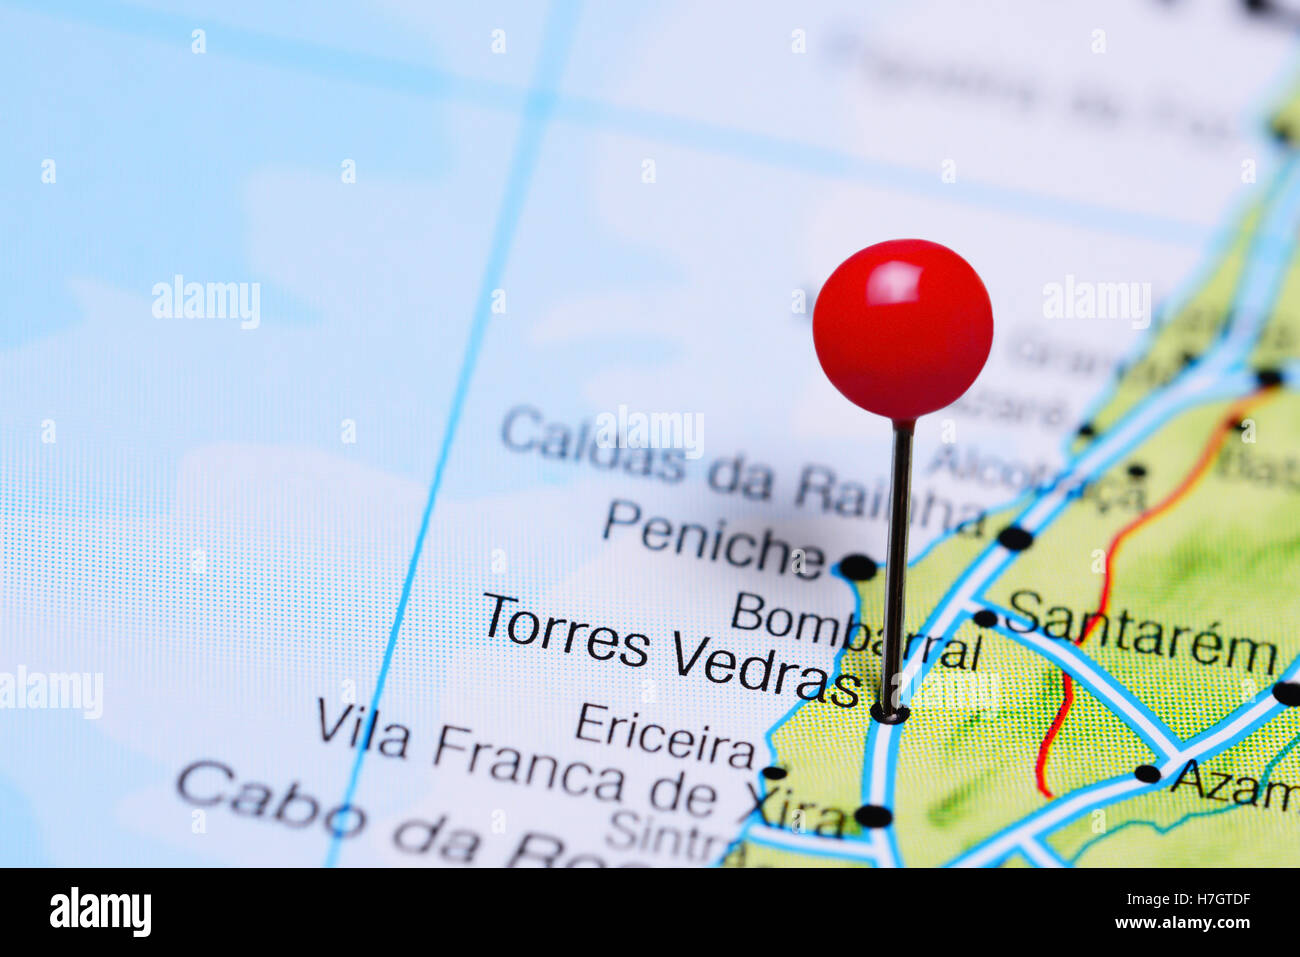 Torres Vedras pinned on a map of Portugal - Stock Image